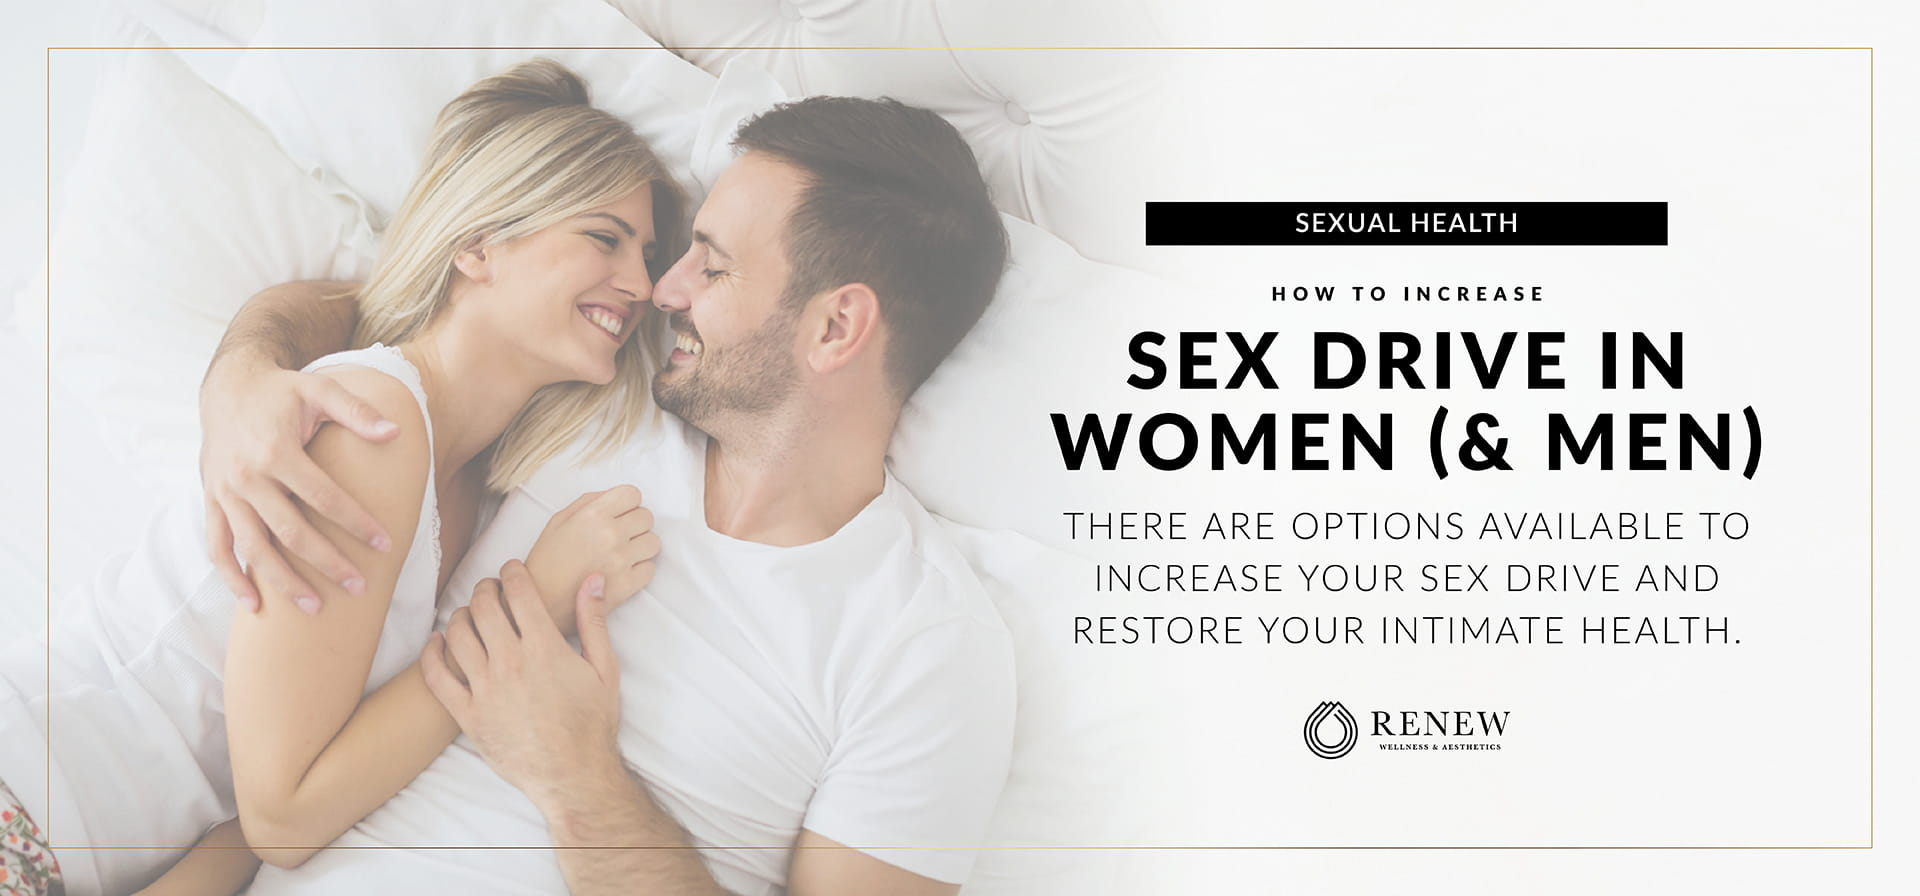 How to Increase Sex Drive in Women (and Men)